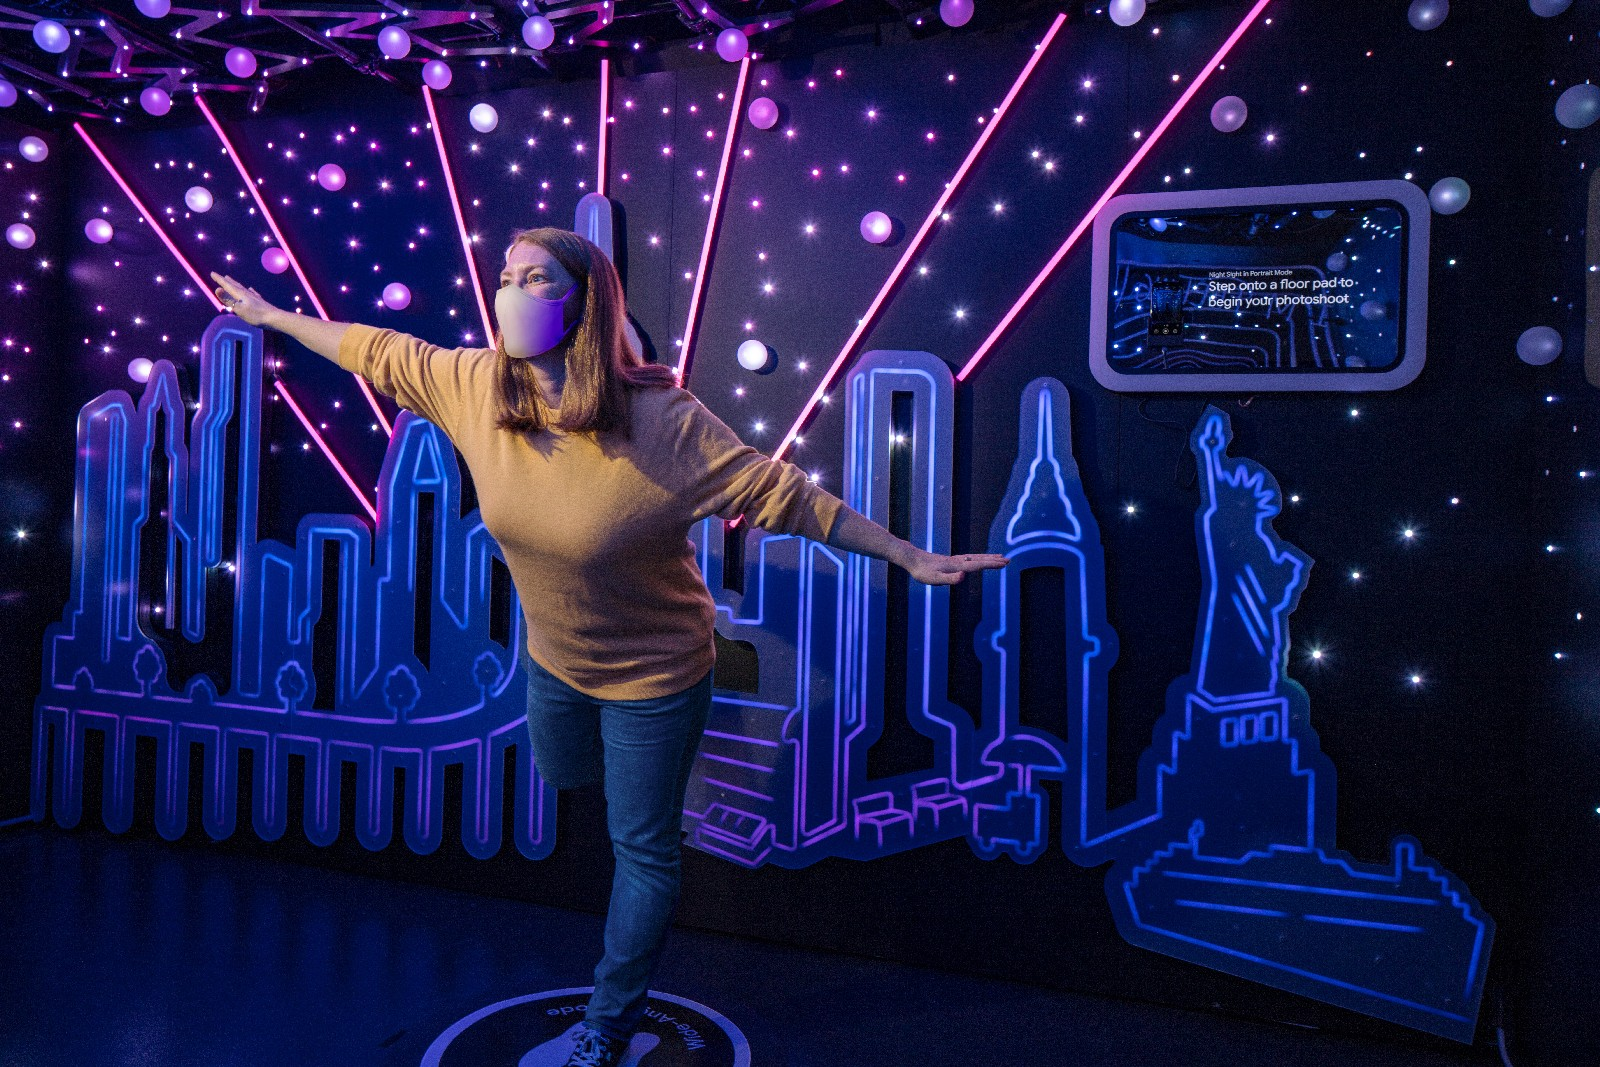 <p>Google Store Chelsea. A Night Sight-themed Sandbox with a person wearing a face mask posing in the middle. The background features a cut-out art rendering of the New York City skyline with rays of pink light emanating from it and the Statue of Liberty on the right. A display is on the wall above this.&nbsp;</p>